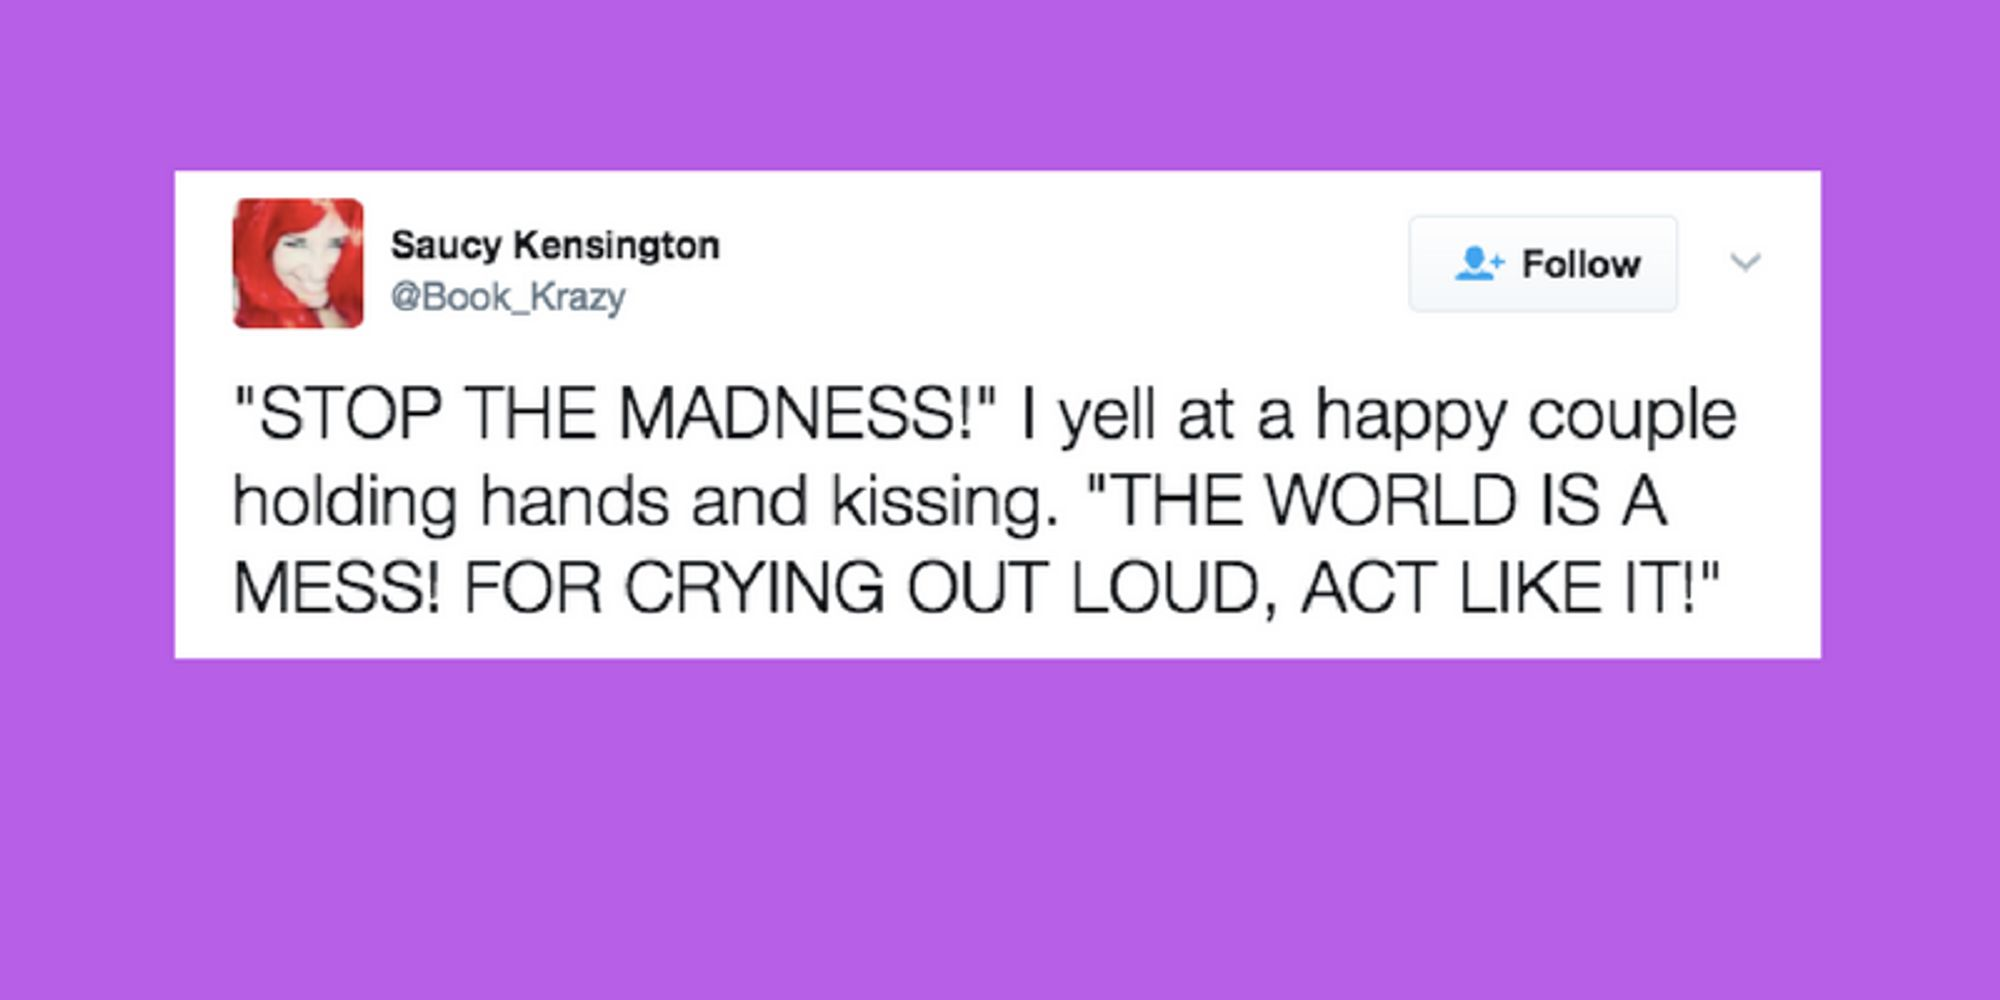 The 20 Funniest Tweets From Women This Week